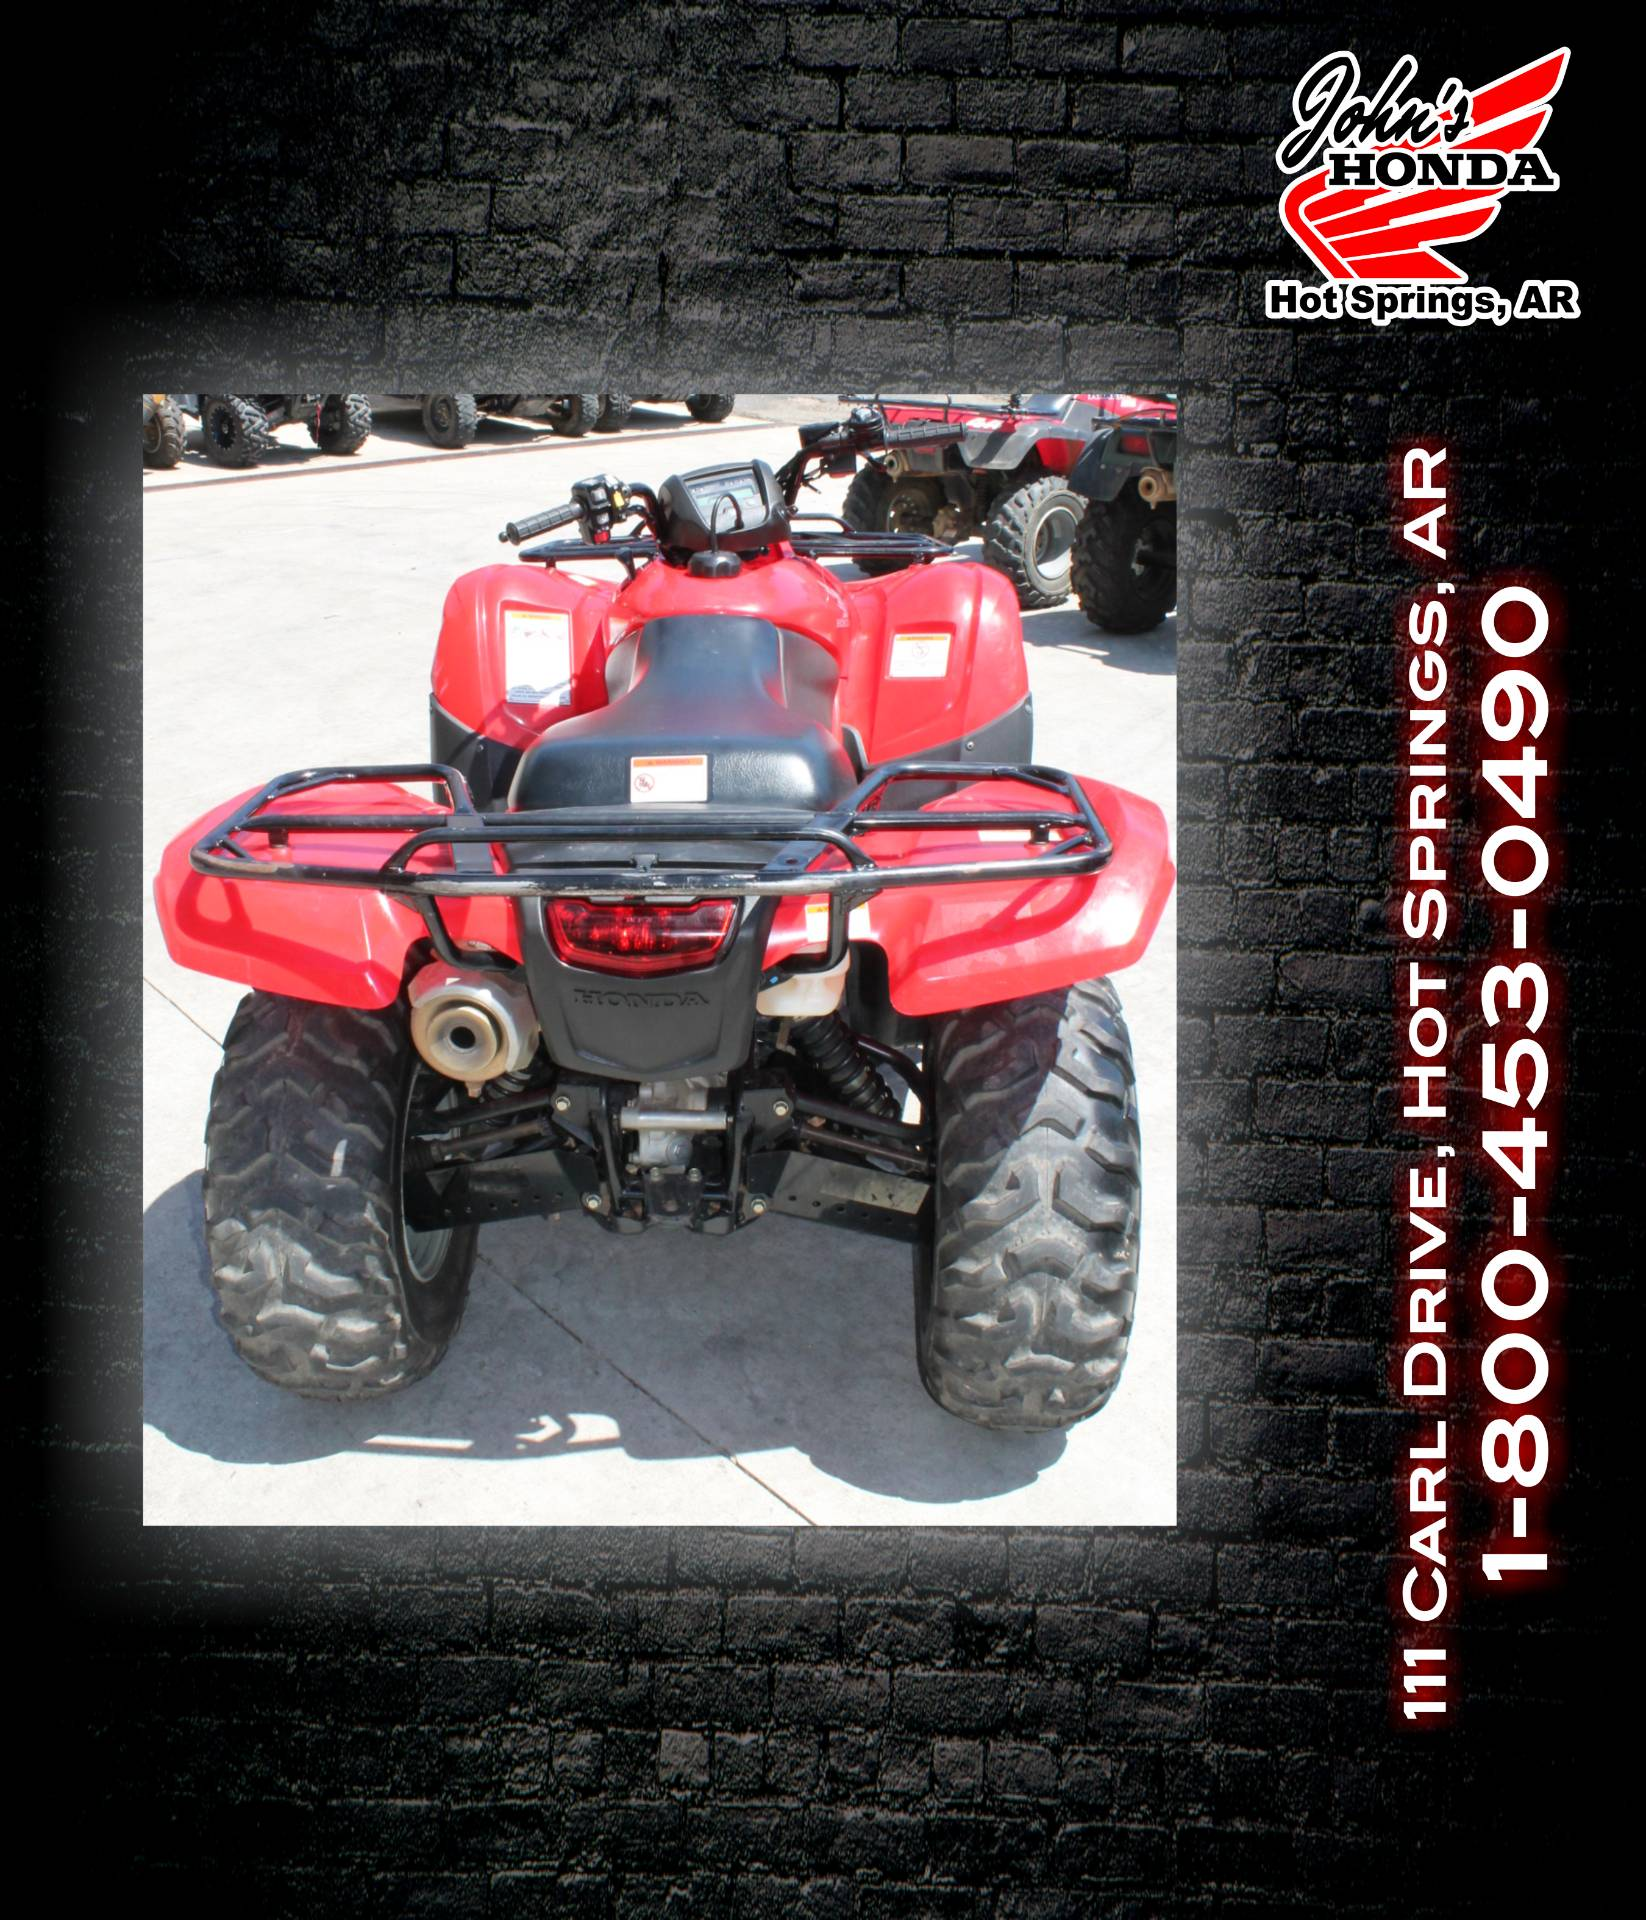 2013 Honda TRX 420FA2 Rancher in Hot Springs National Park, Arkansas